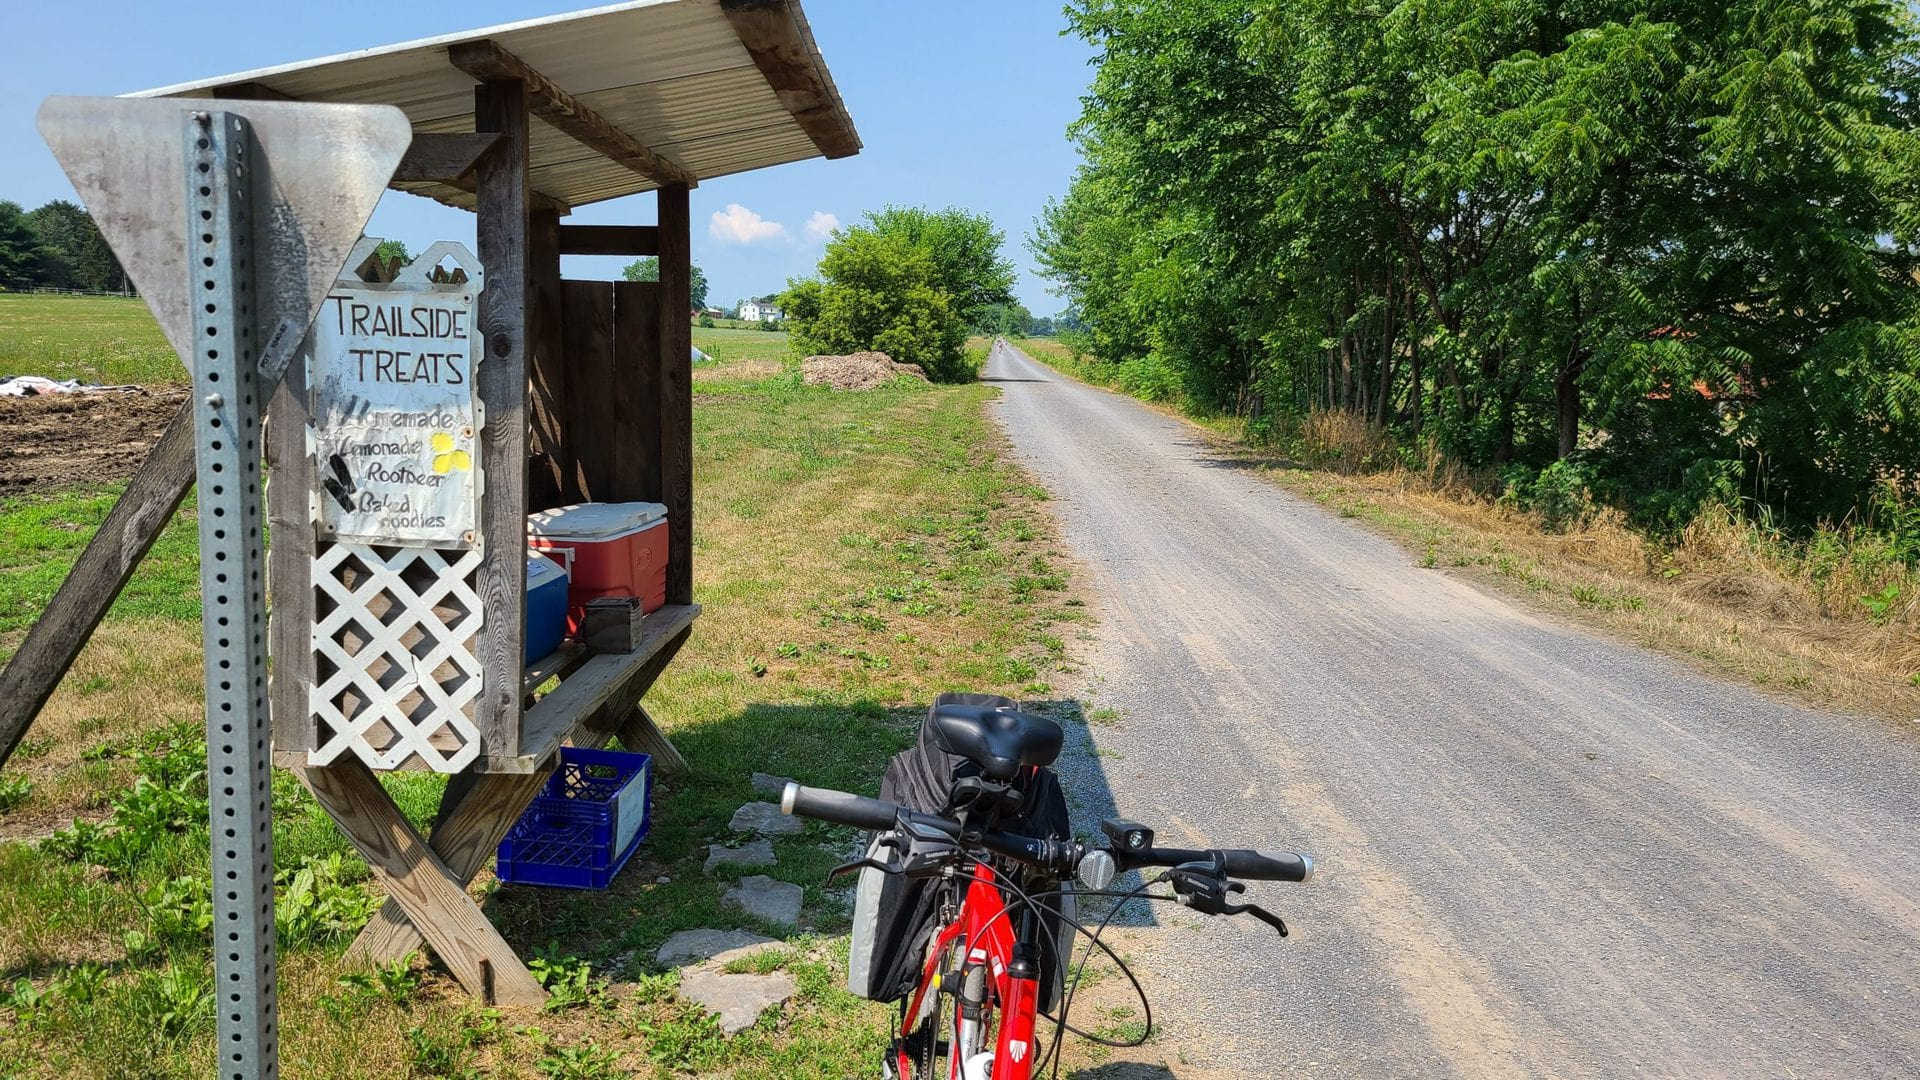 """A handmade foodstand sits about six feet off the trail. The stand contains several coolers of varying colors and sizes, each containing different snacks and beverages for sale. A sign reads """"Trailside Treats: Homemade lemonade, root beer, baked goodies"""". My red bike is visible in the foreground."""